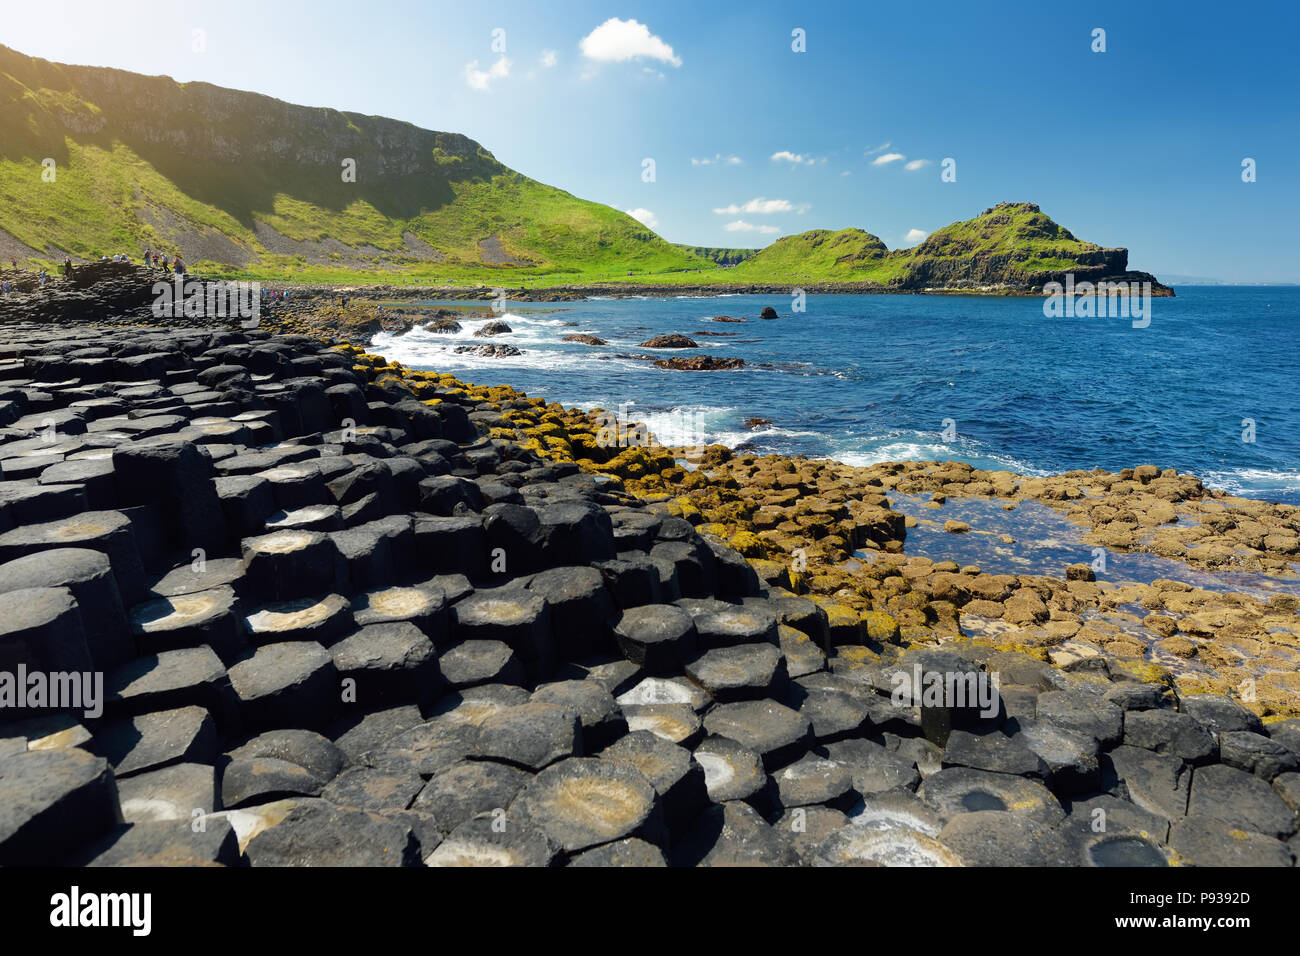 Giants Causeway, an area of hexagonal basalt stones, created by ancient volcanic fissure eruption, County Antrim, Northern Ireland. Famous tourist attStock Photo